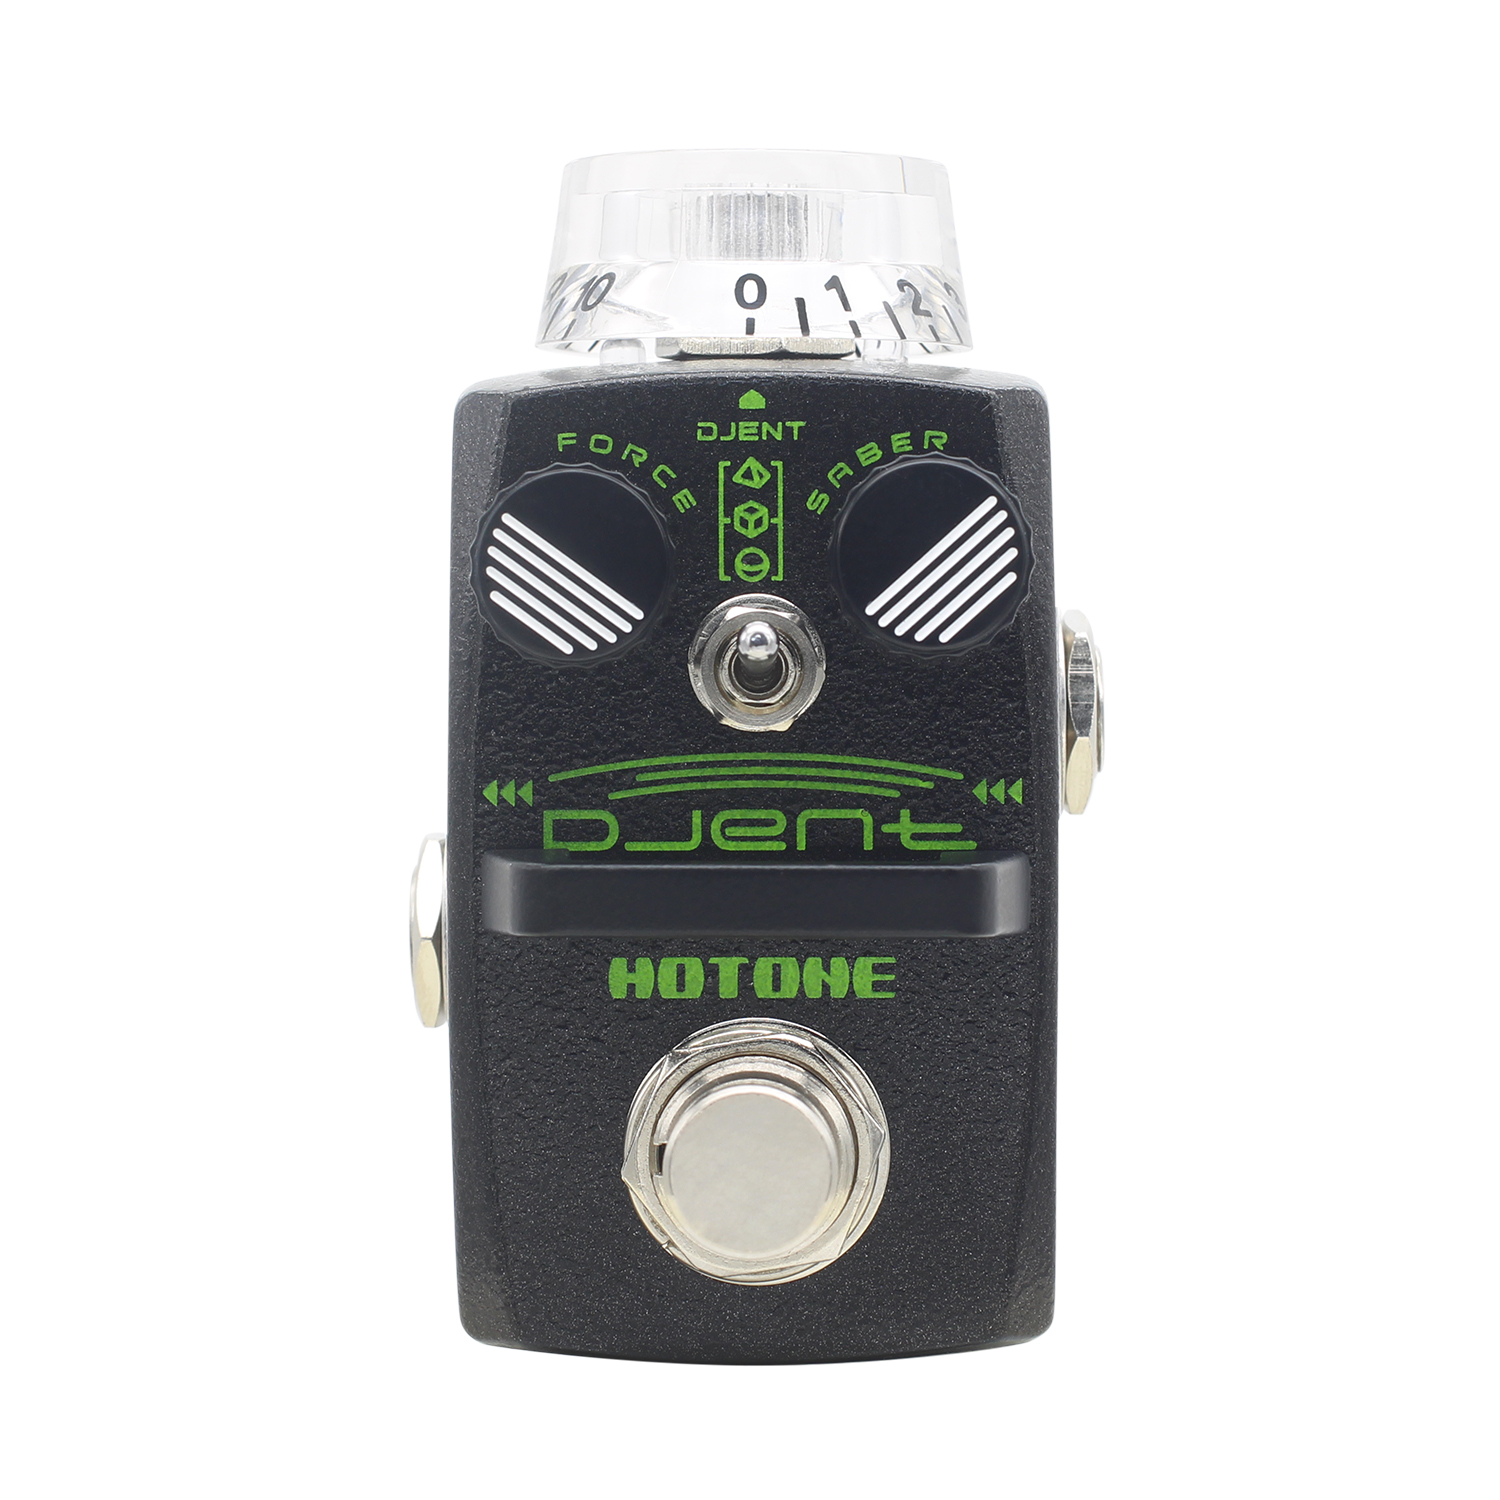 Hotone Djent Distortion Guitar Effect Pedal Effects for Electric Guitar Modern Hi Gain Distortion True Bypass mooer ensemble queen bass chorus effect pedal mini guitar effects true bypass with free connector and footswitch topper